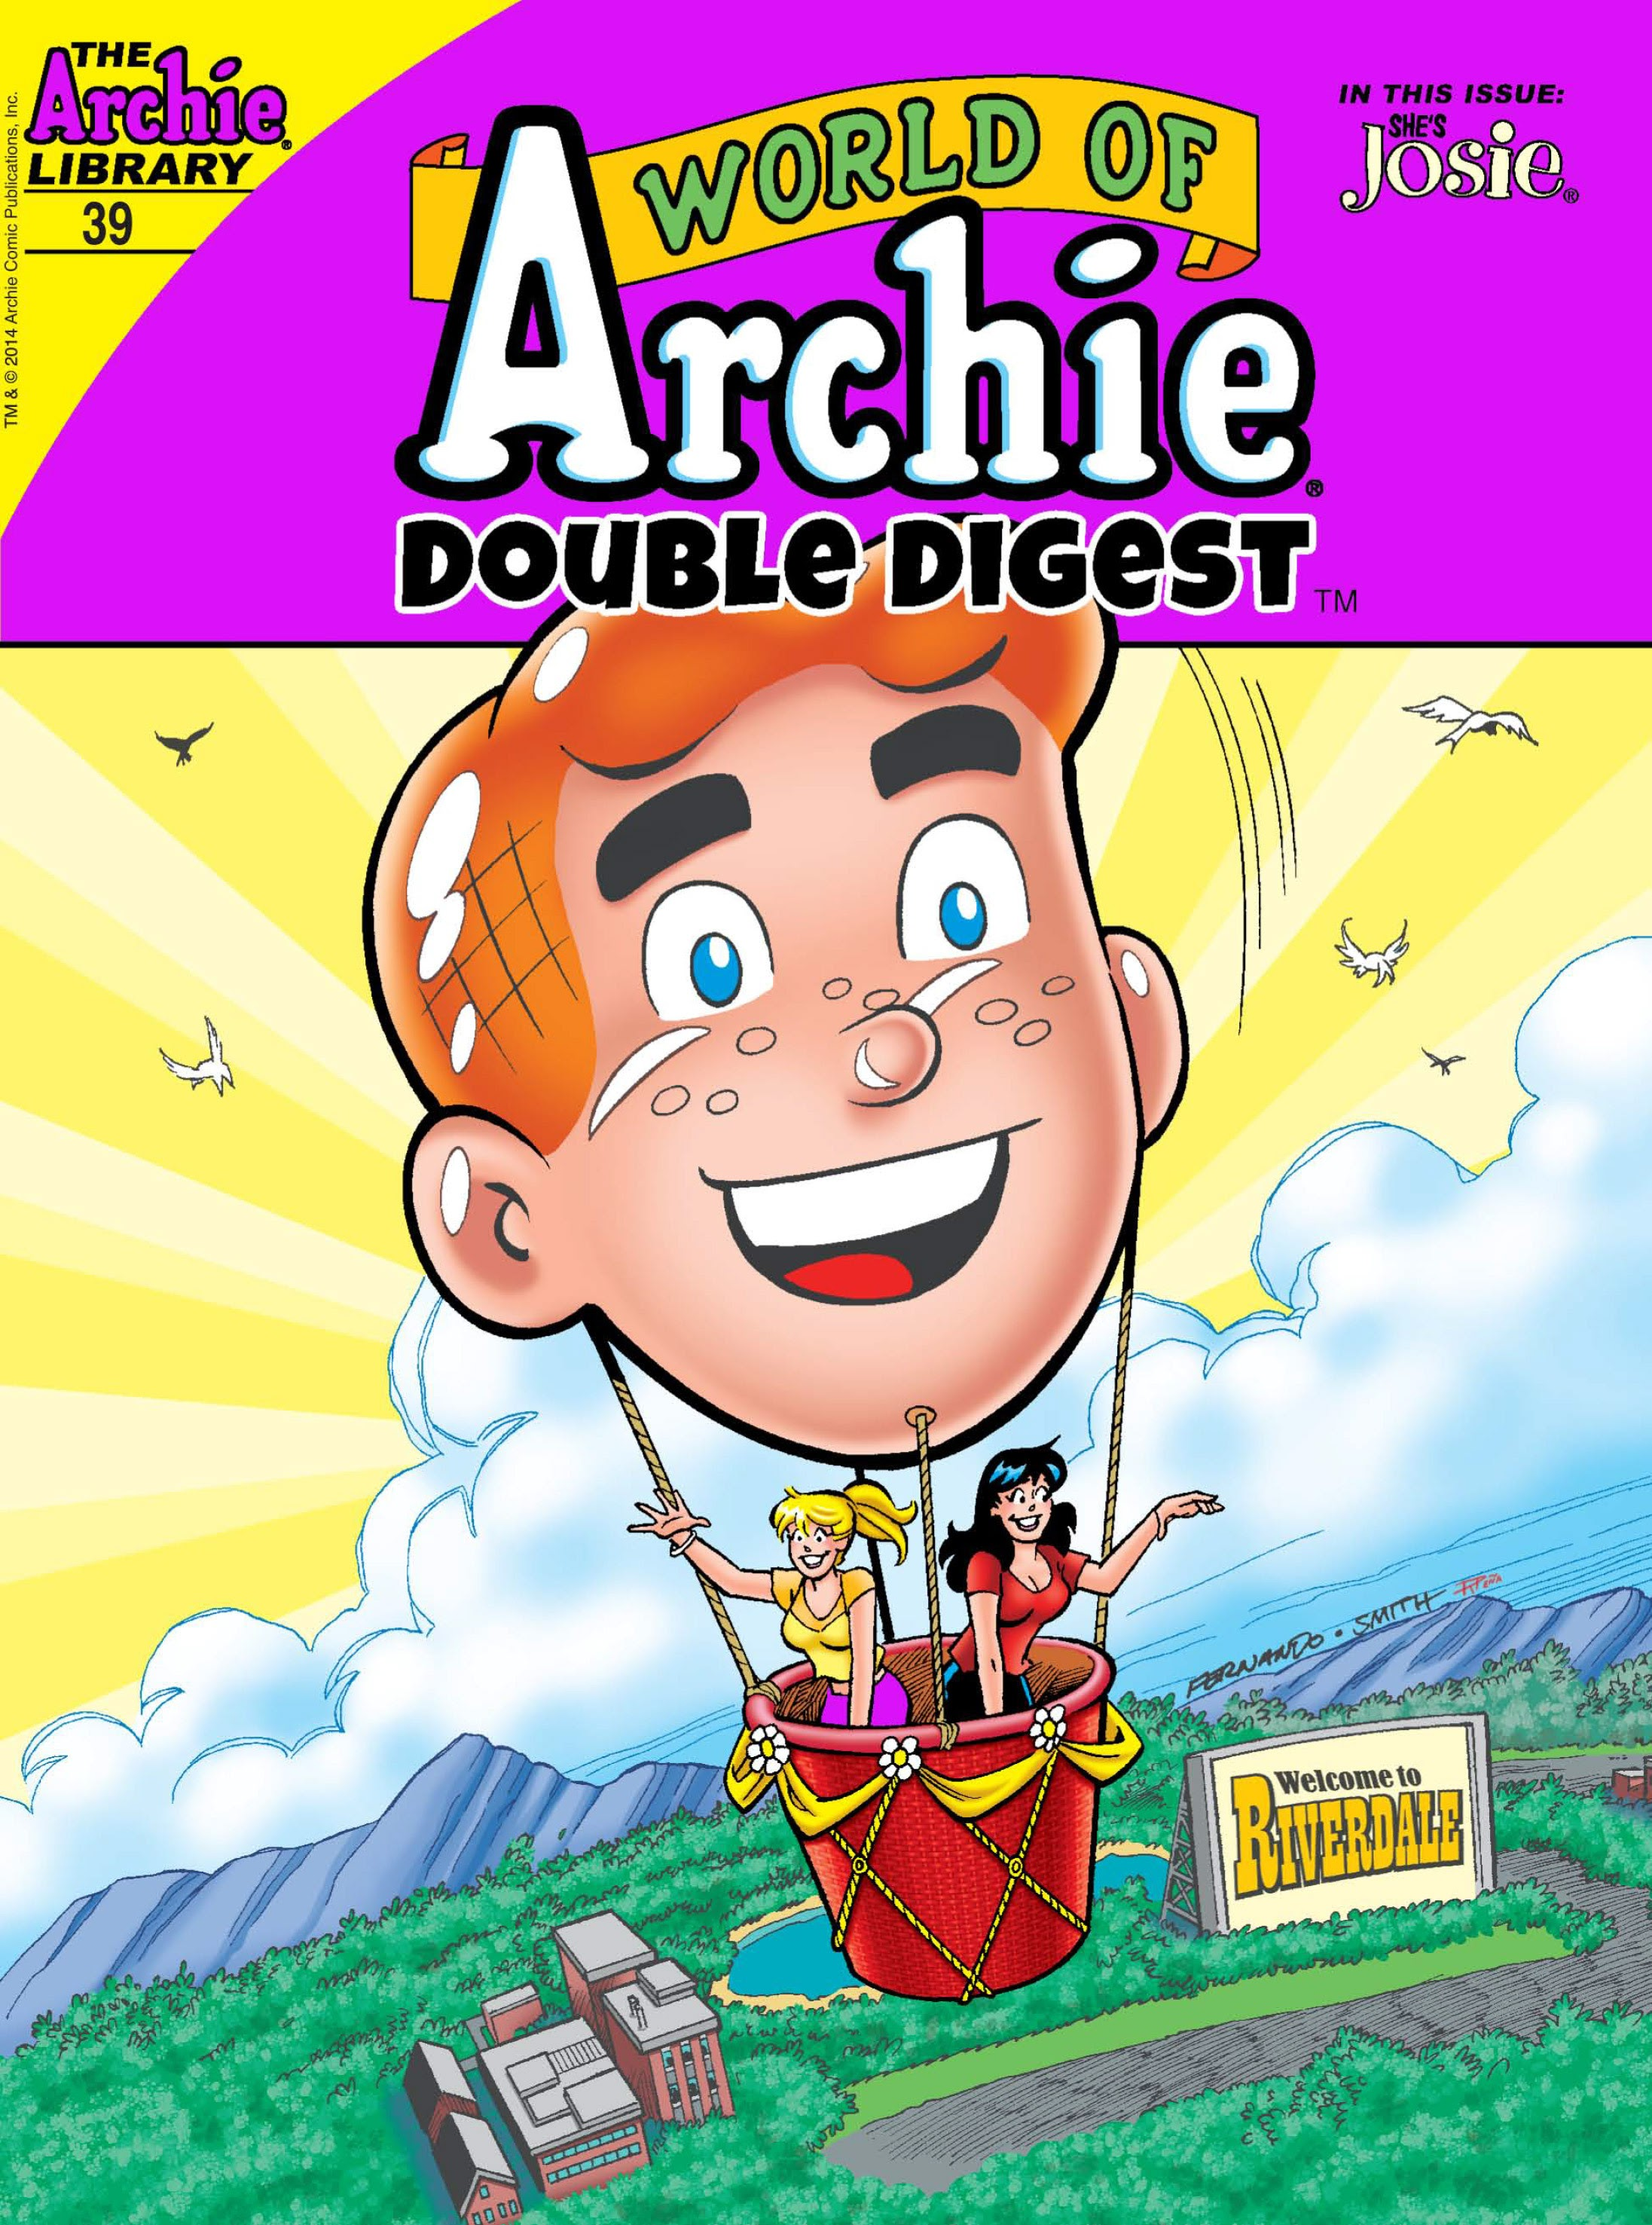 World of Archie Double Digest 39 Page 1